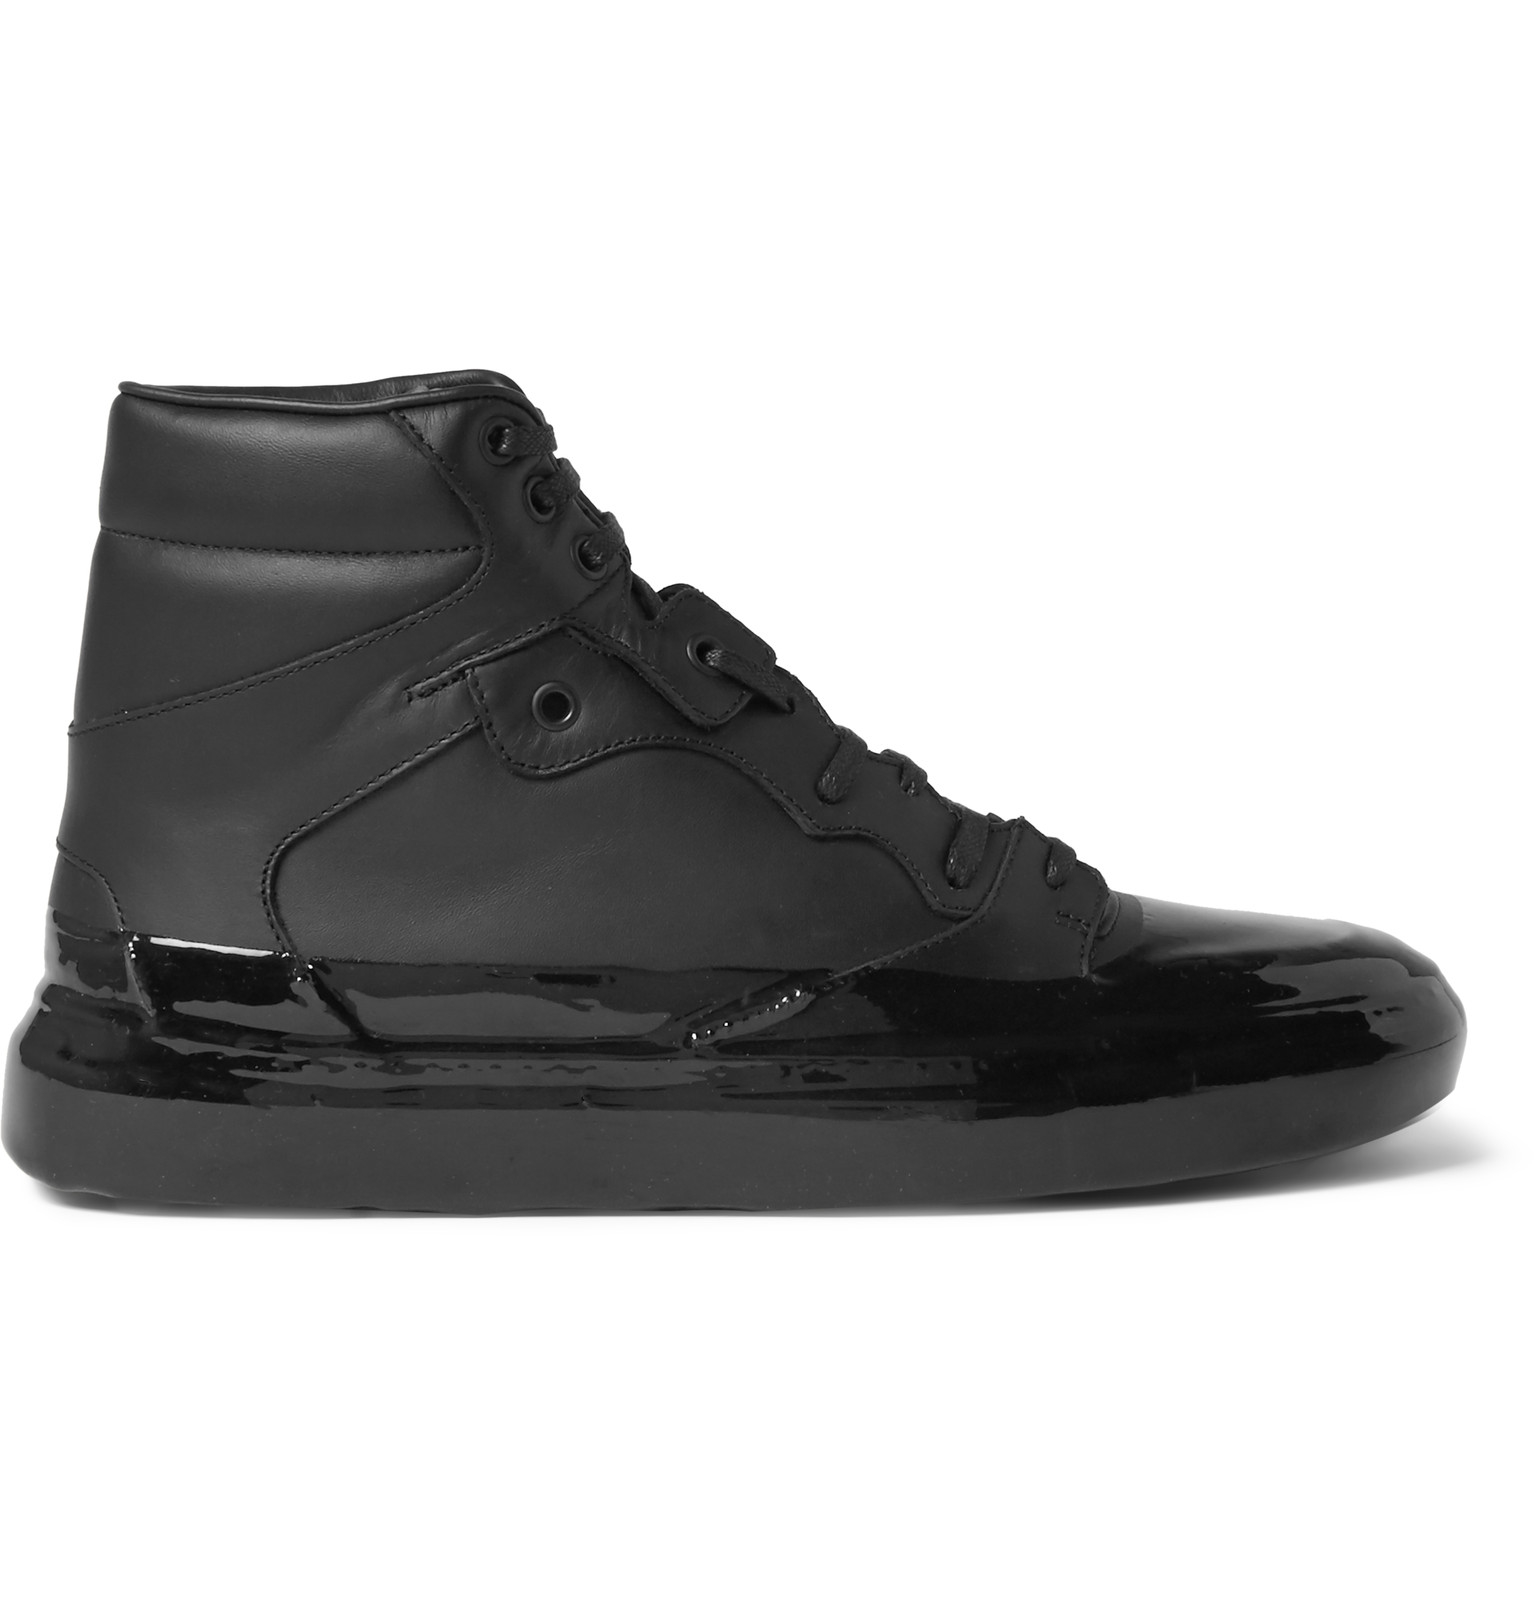 Cristóbal Balenciaga left an indelible mark upon fashion. BALENCIAGA, the Paris-based label he founded remains a consistently evolving label. The bold high top sneakers are one of the maison's immediate classics and prove that the fashion houses can do casual footwear just as well as the established sportswear giants.